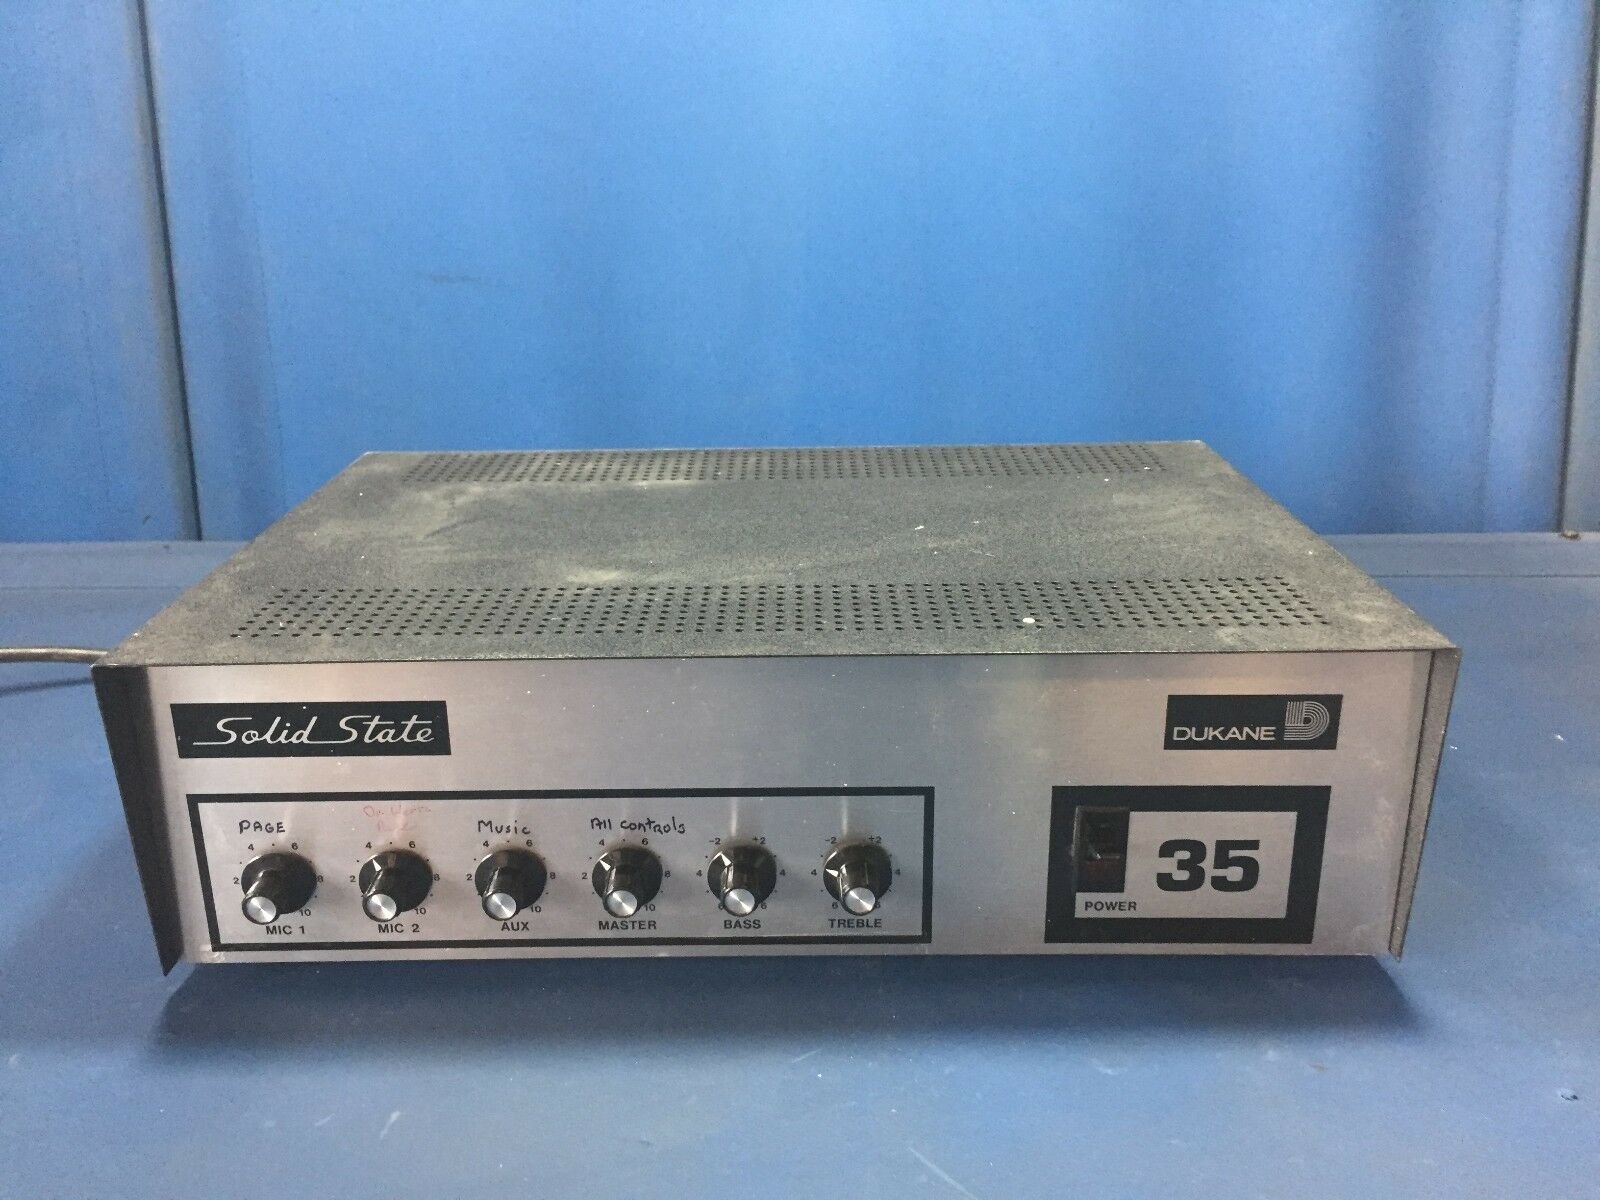 SOLID STATE DUKANE 35 AMPLIFIER